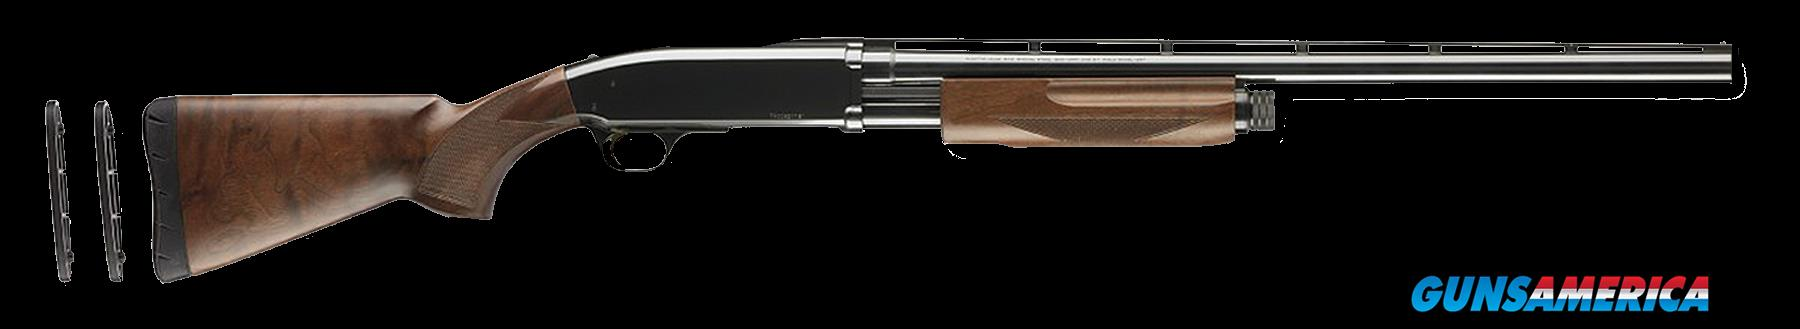 "Browning 012270607 BPS Micro Midas Pump 20 Gauge 22"" 3"" Black Walnut Stk Blued Rcvr  Guns > Shotguns > Browning Shotguns > Pump Action"